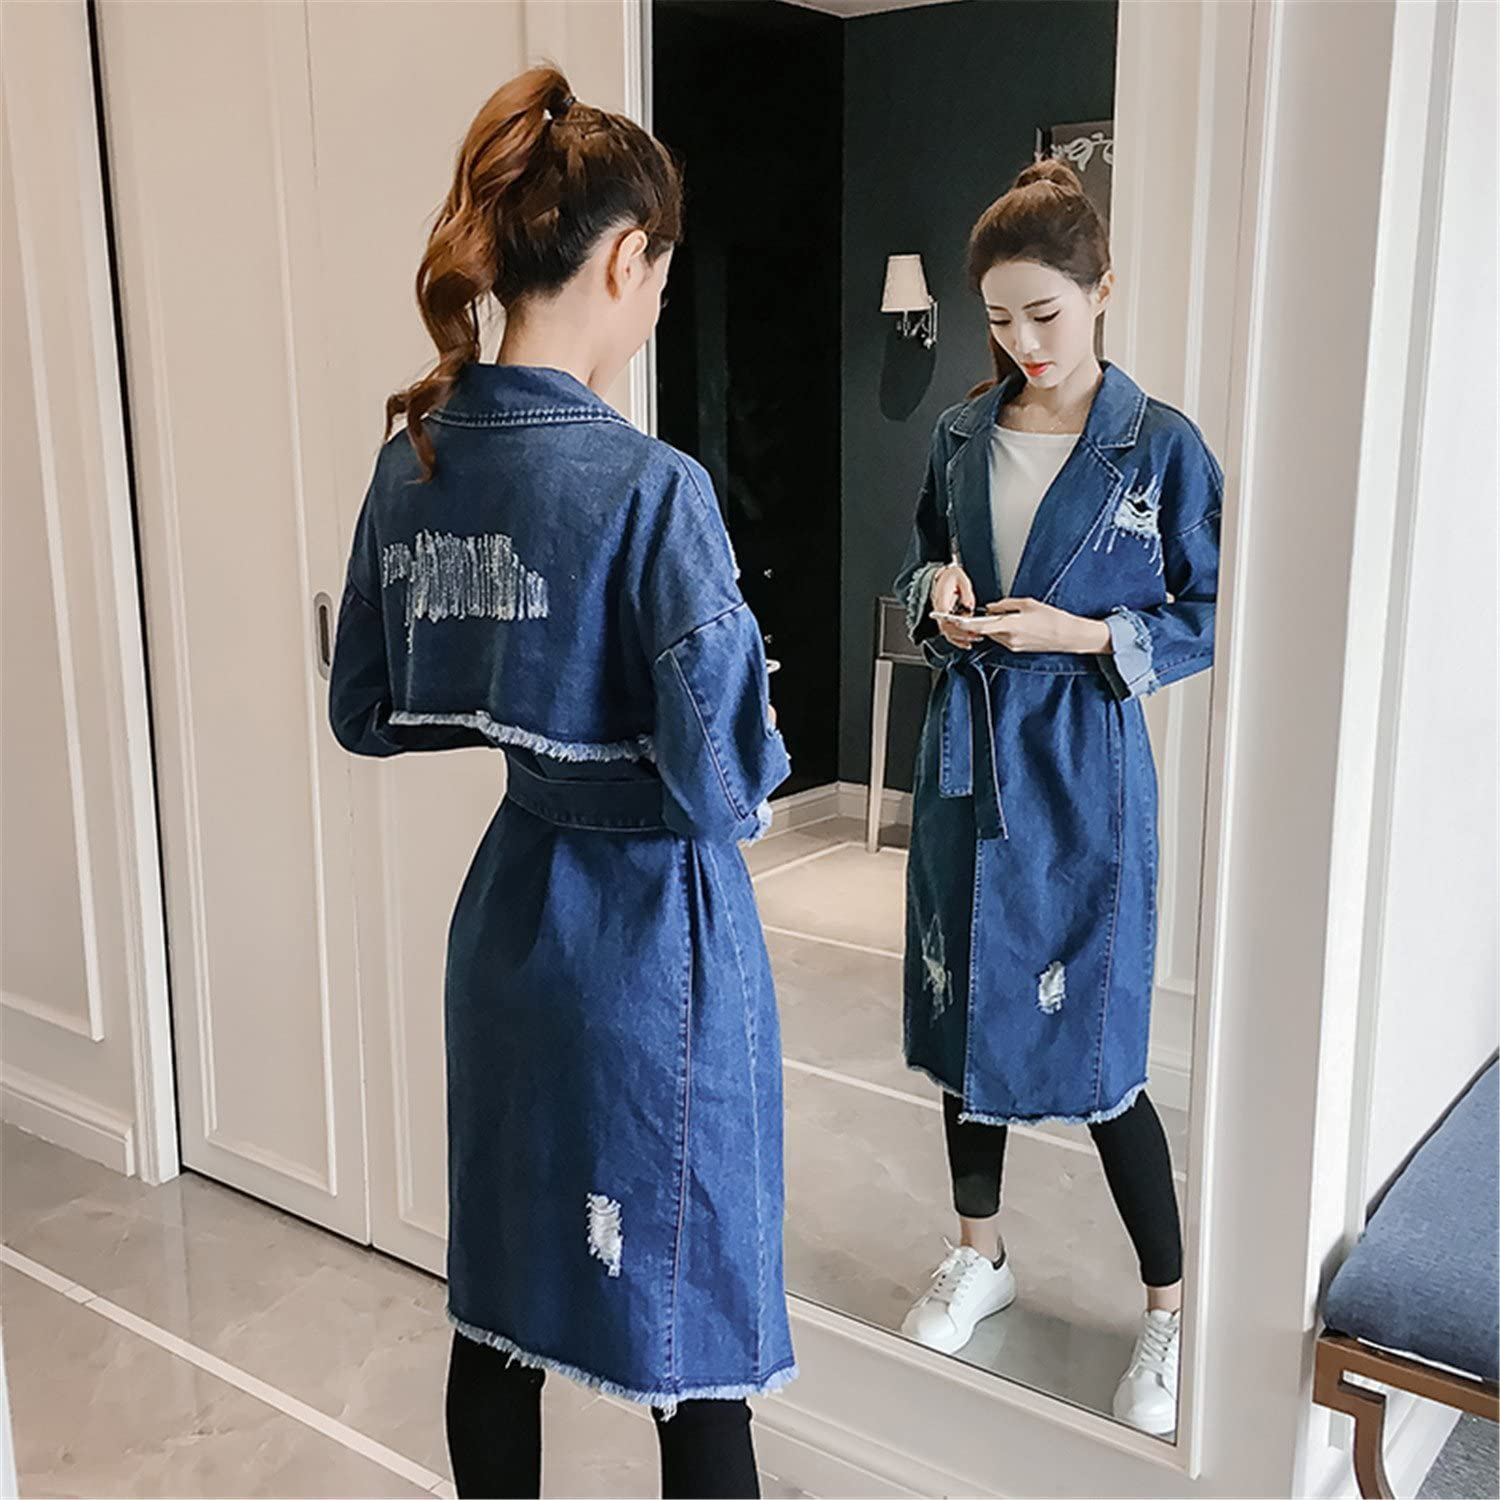 LOKOUO Autumn Trench Coat Women Slim Long Sleeve Turn-down Collar Medium Long Denim Caot Feminino Jeans Windbreaker